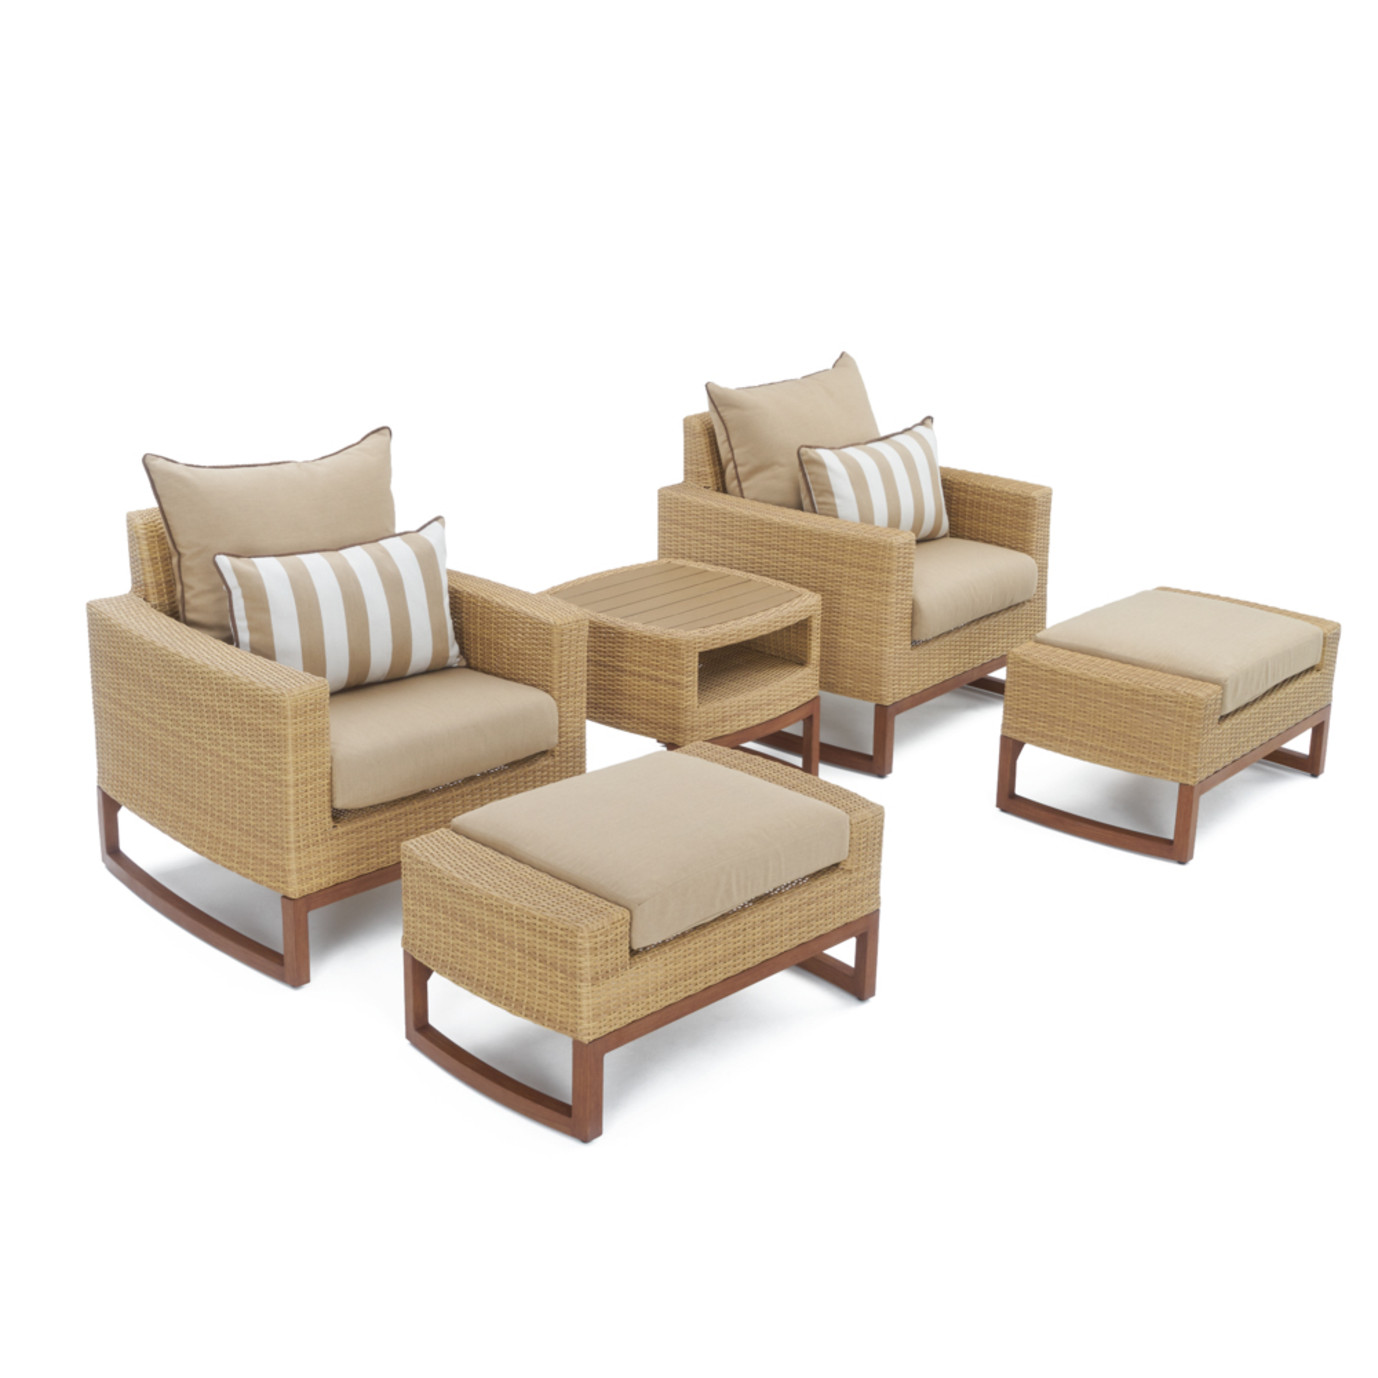 Milea™ 8pc Deep Seating Set - Maxim Beige